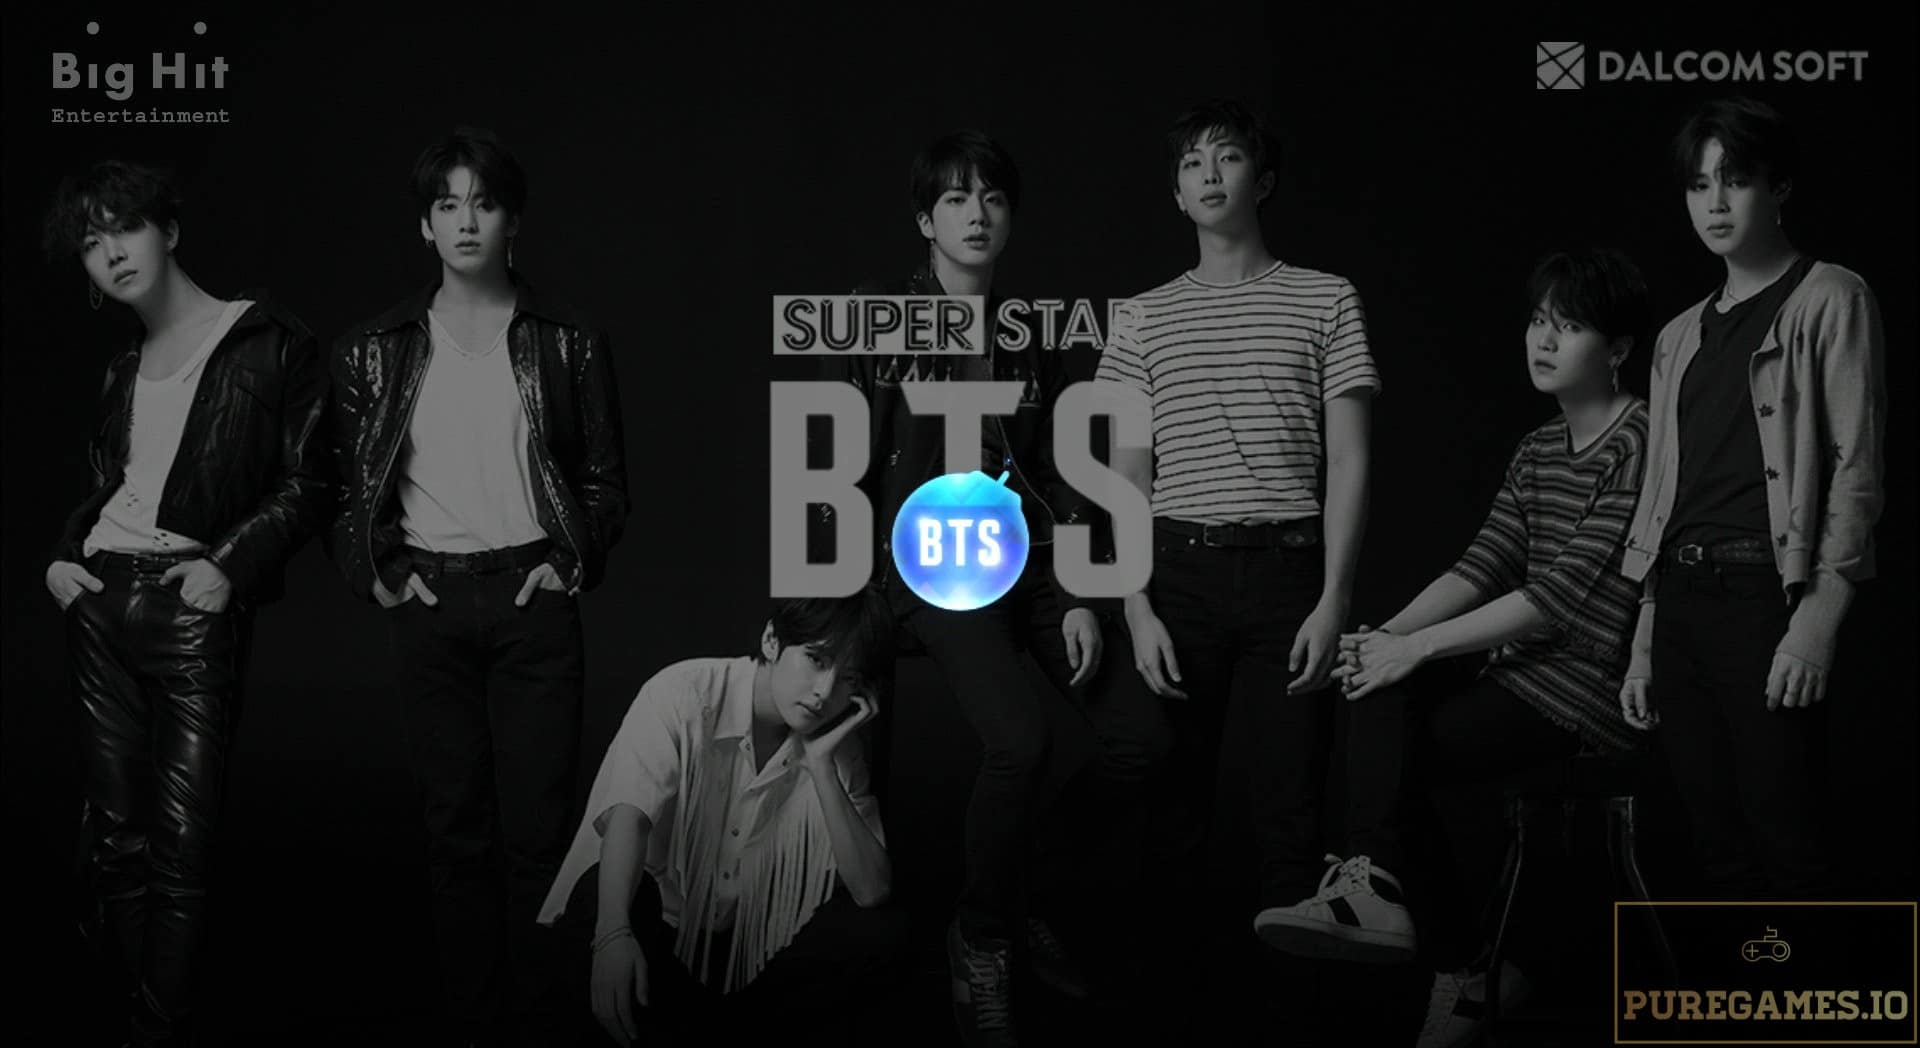 Download SuperStar BTS MOD APK - For Android/iOS 18